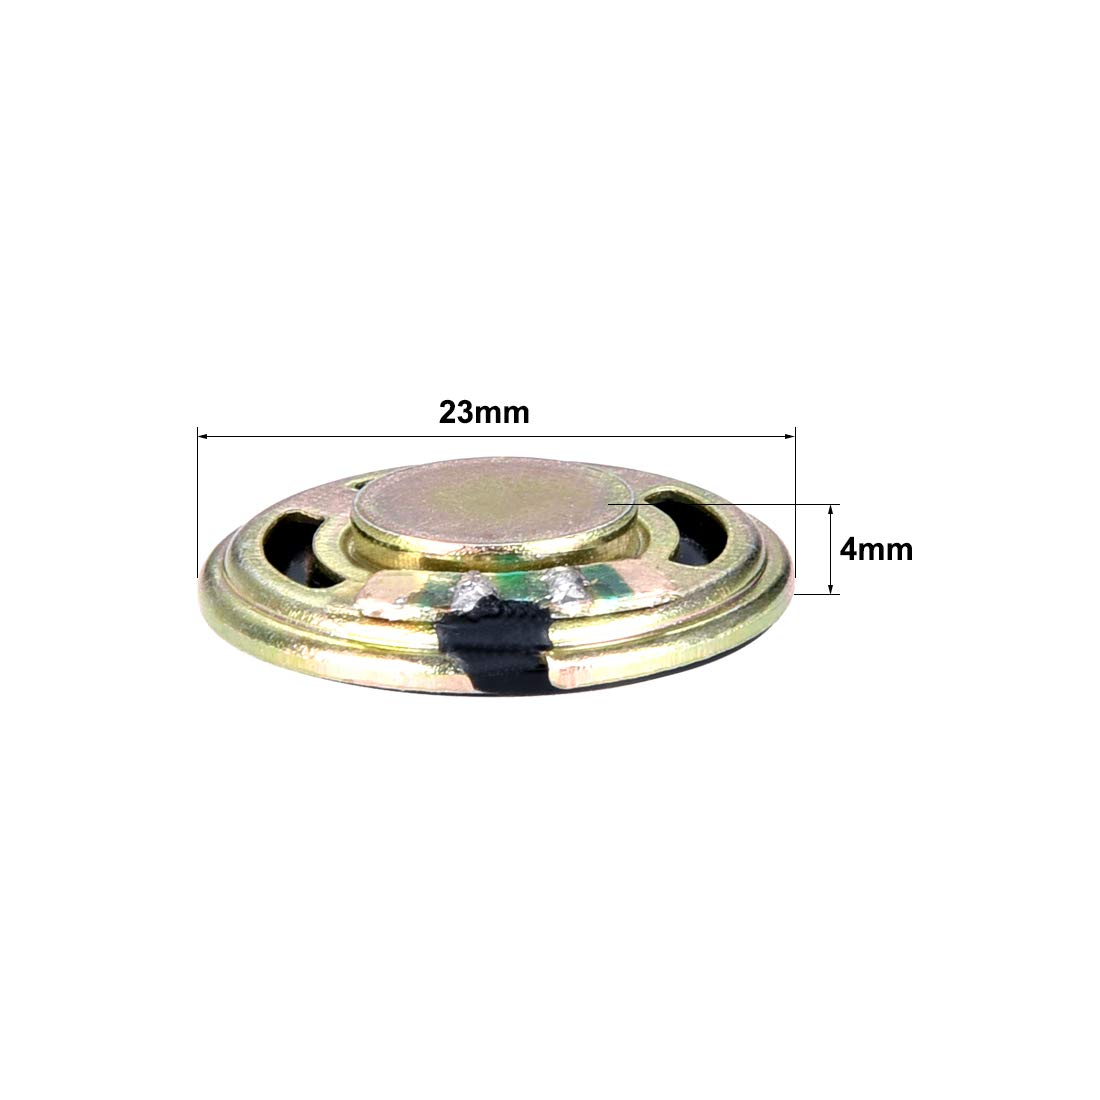 uxcell 0.5W 8 Ohm DIY Speaker 23mm Round Shape Replacement Loudspeaker 2pcs